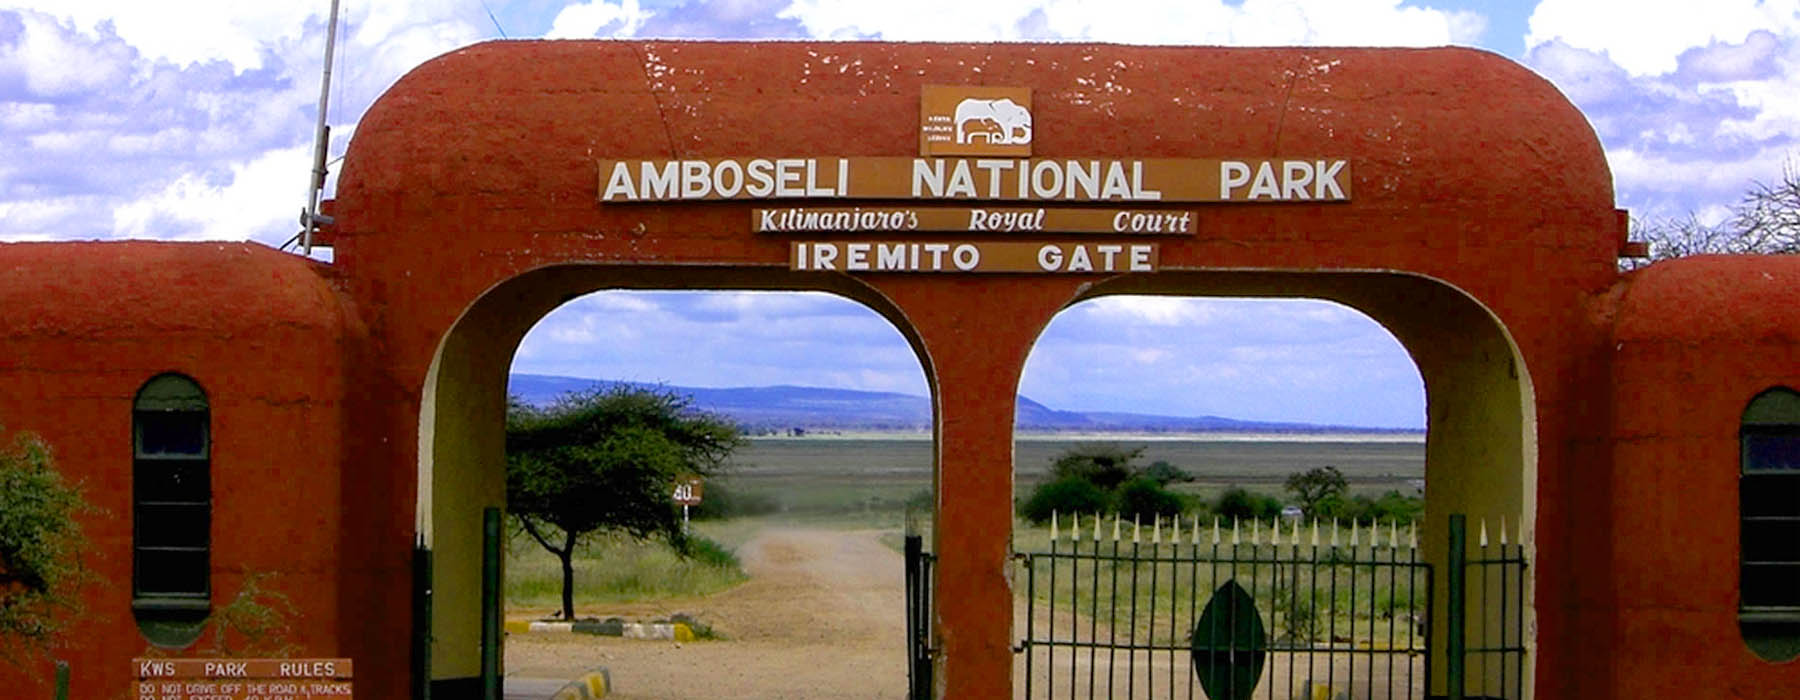 Amboseli_National_Park_gate